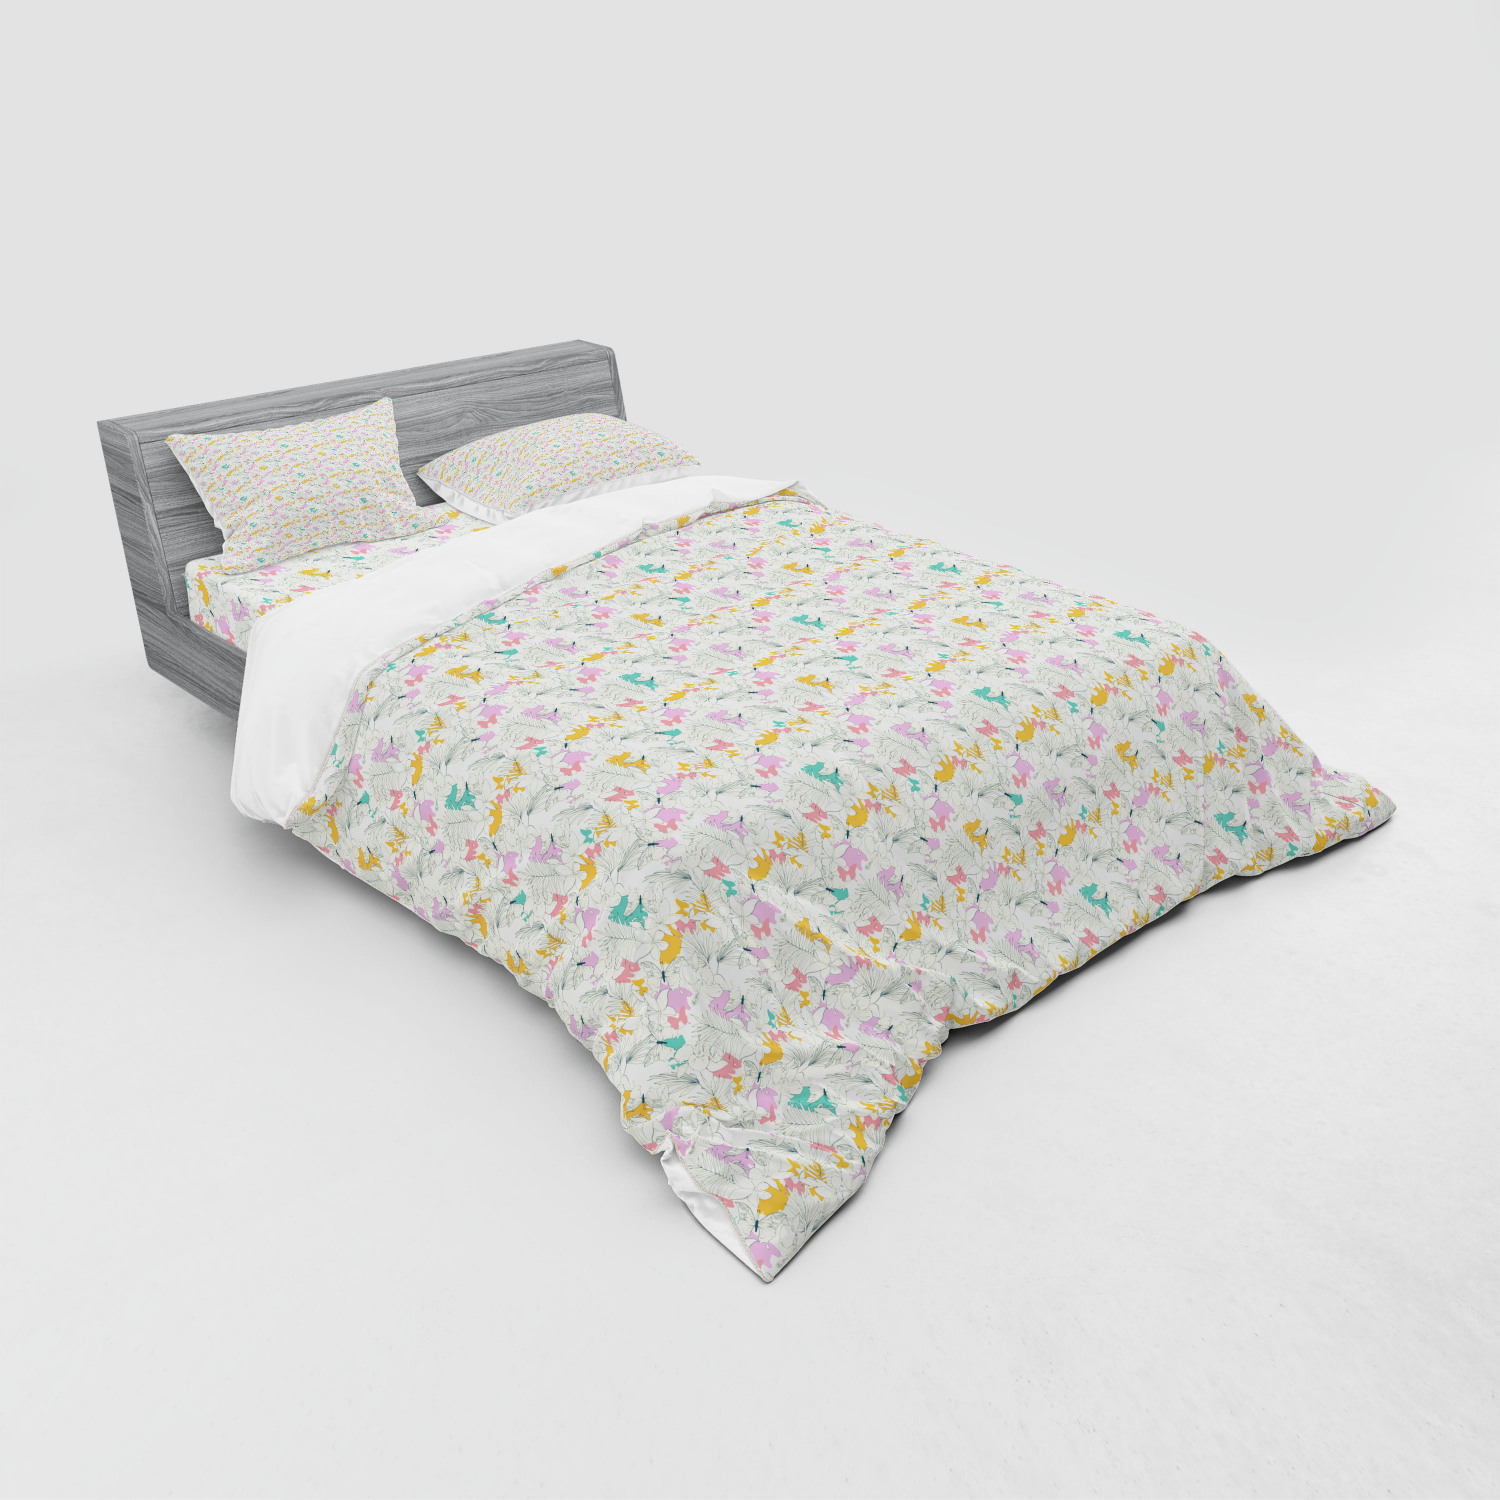 thumbnail 7 - Ambesonne Summer Bedding Set Duvet Cover Sham Fitted Sheet in 3 Sizes